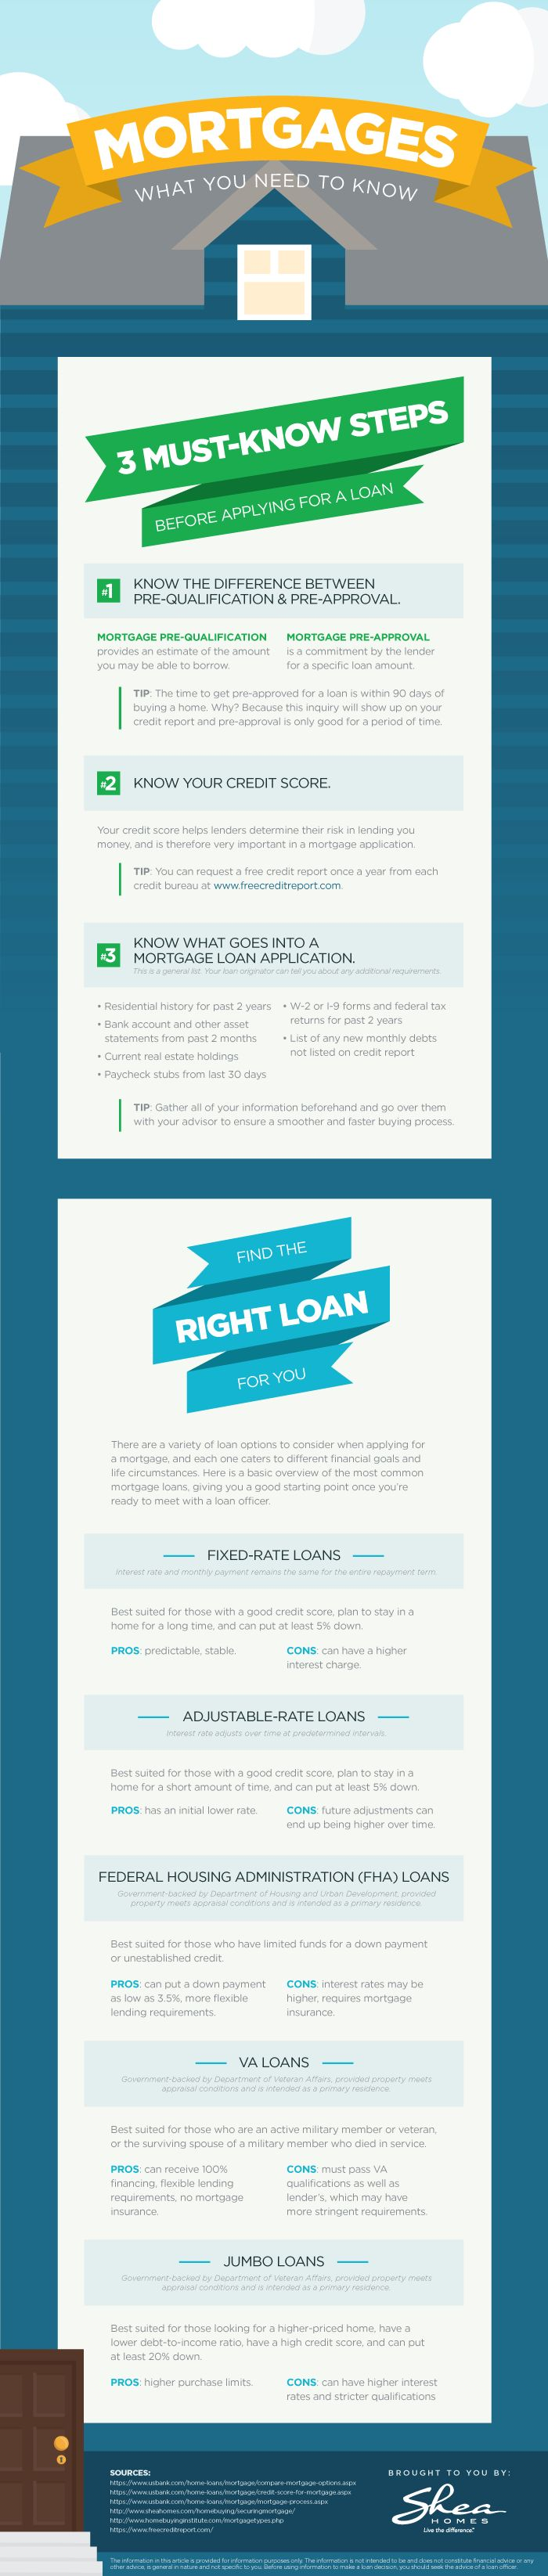 Looking for your dream home learn the basics of some of for Learn mortgage